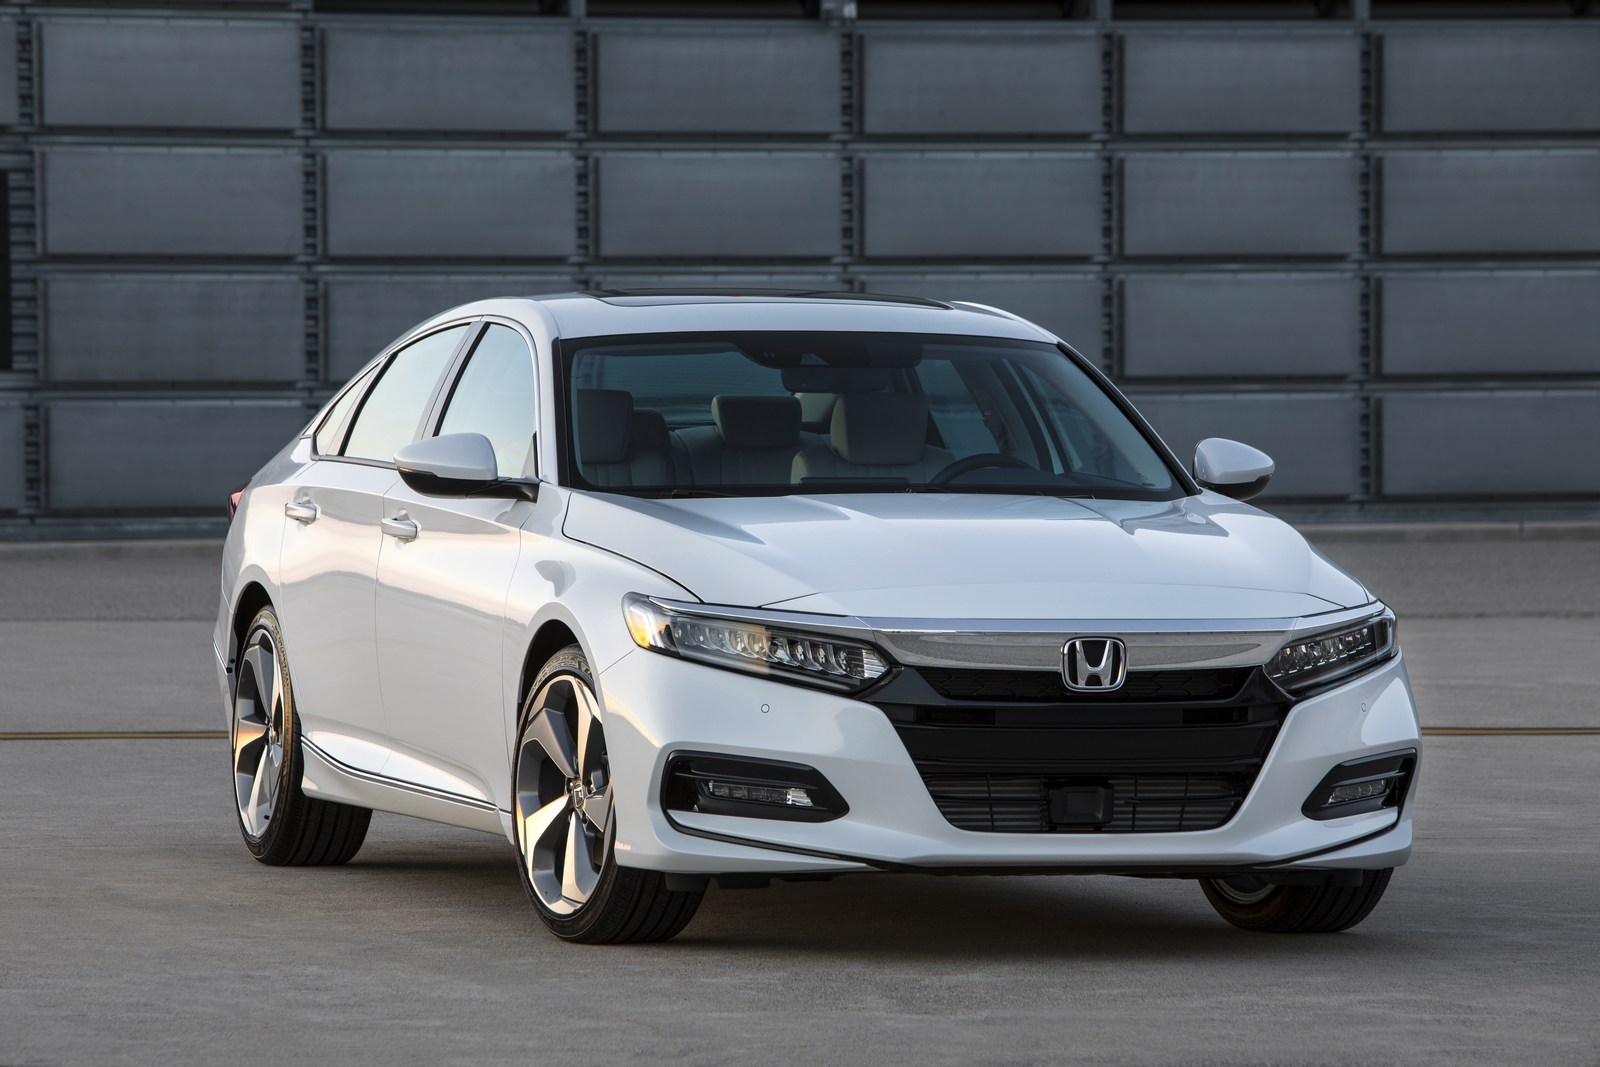 Honda Accord 2018 (5)